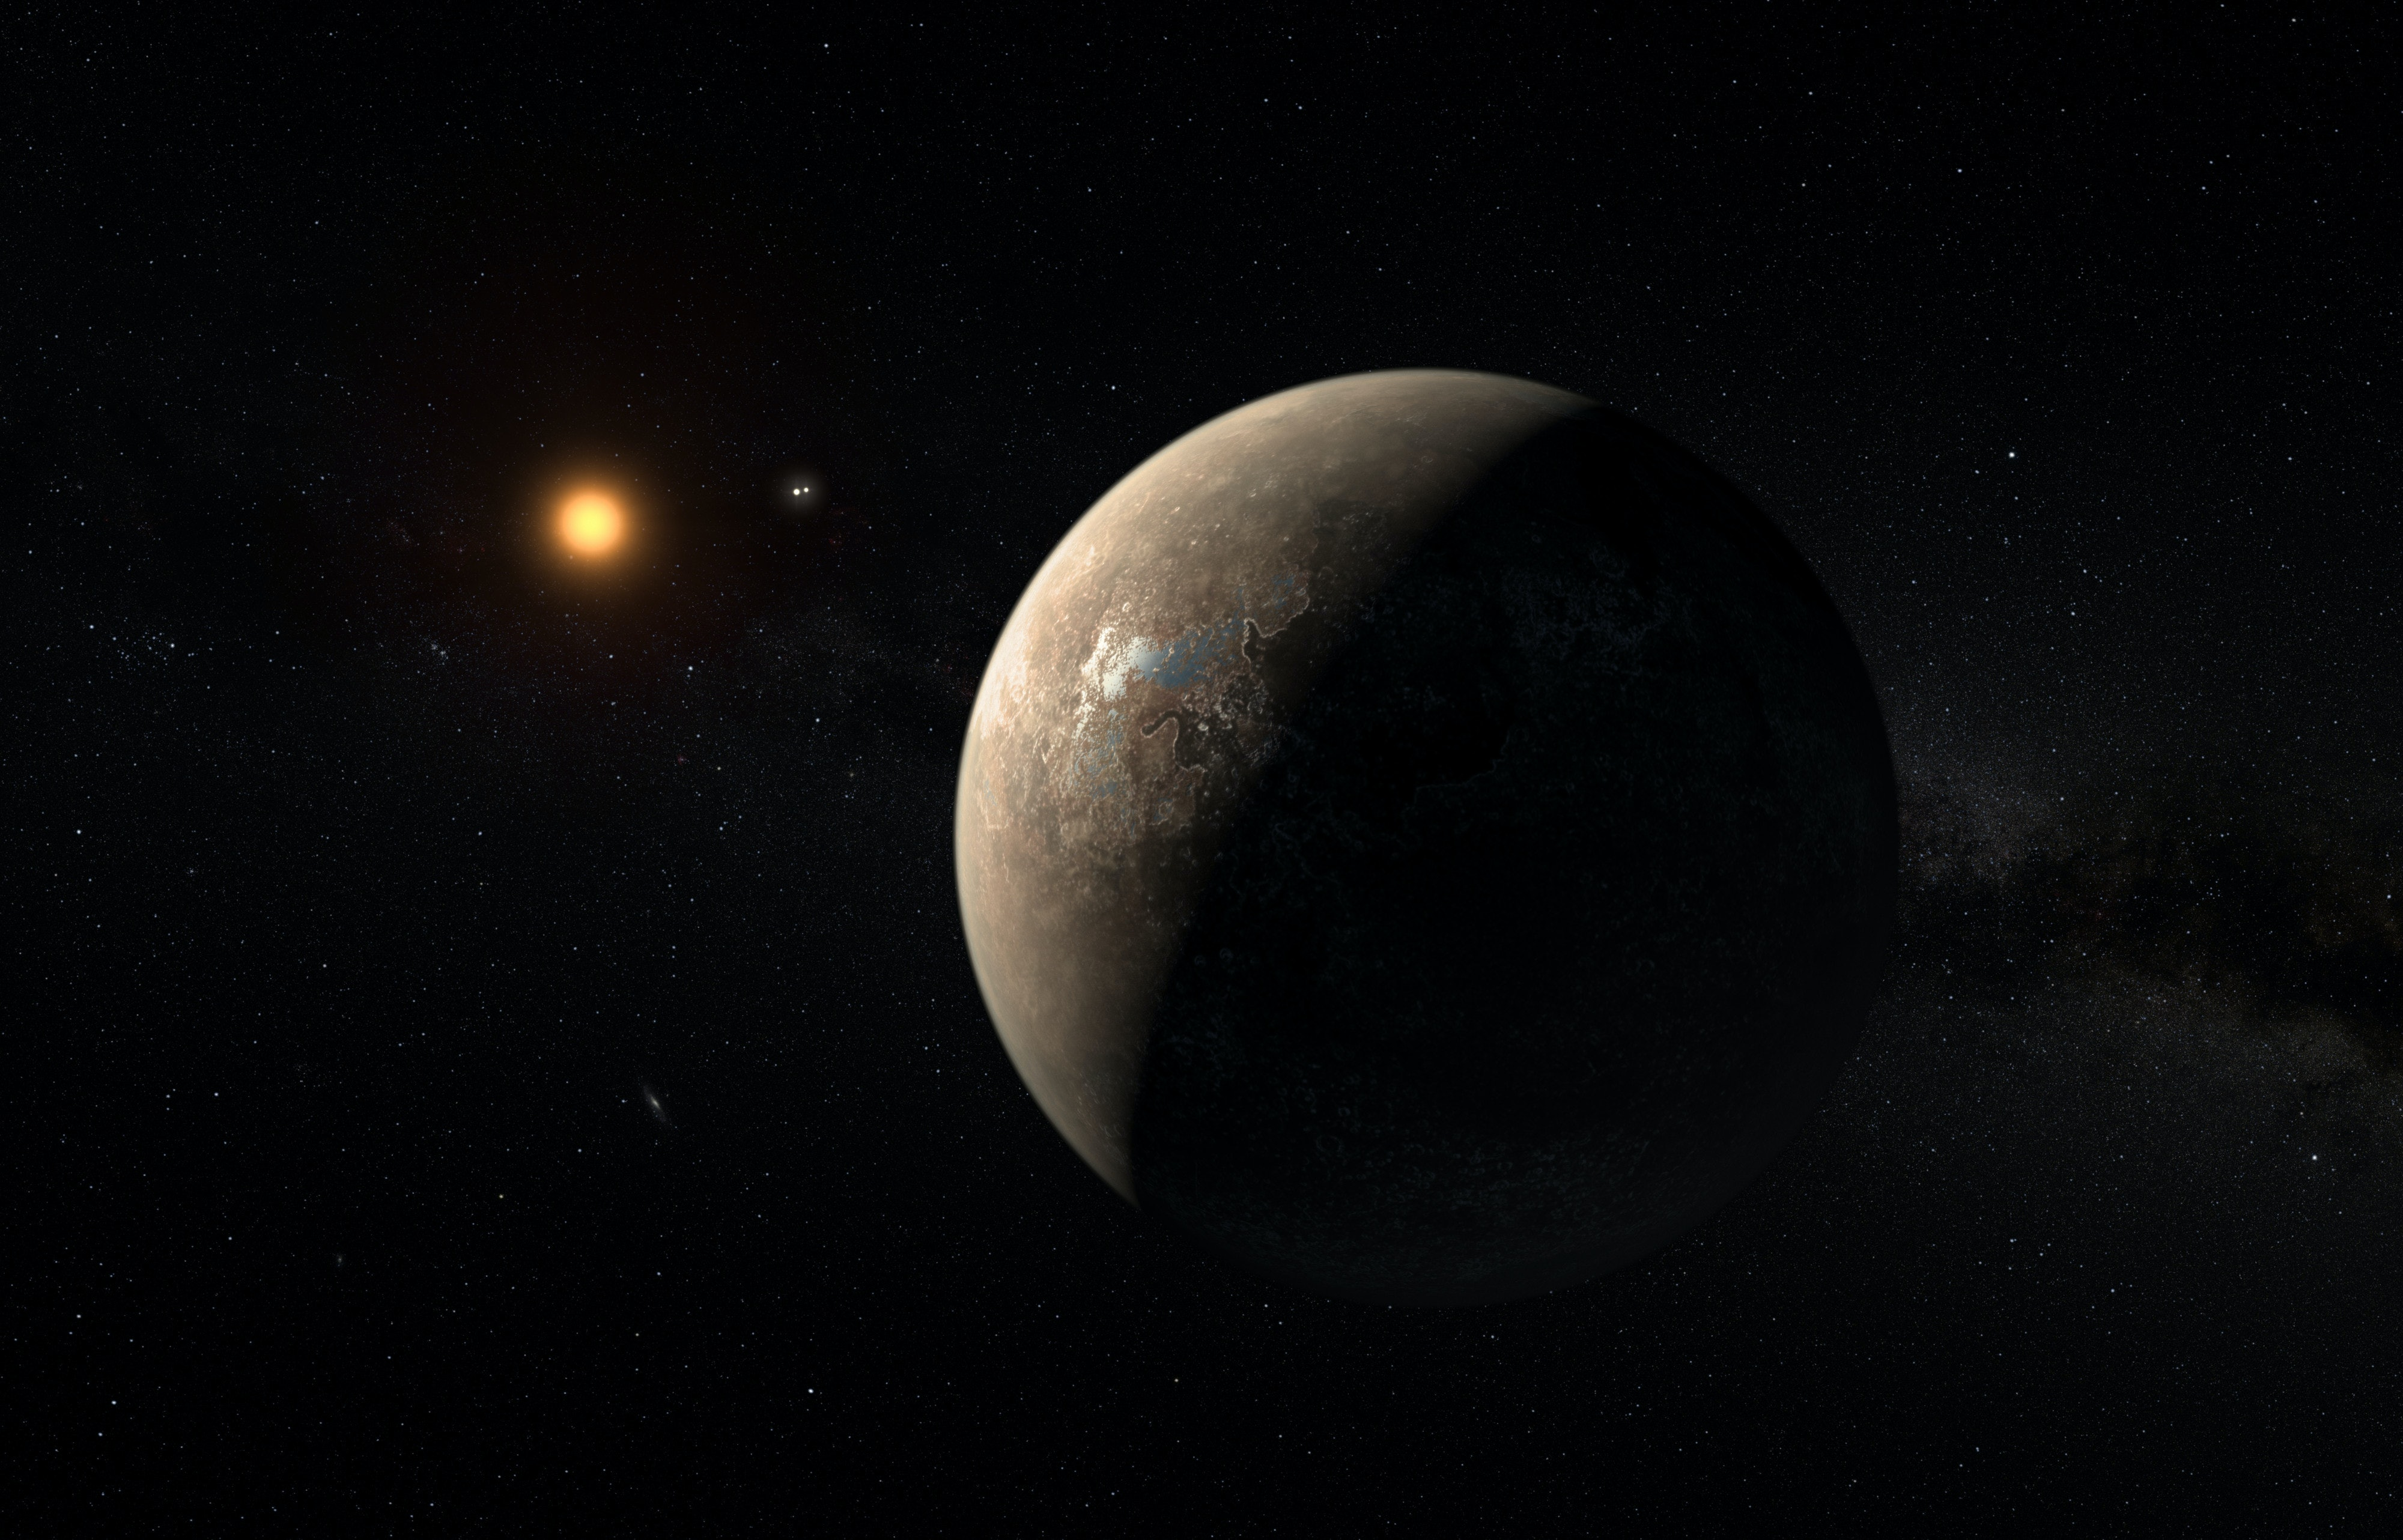 Astronomers Hope To Take The First Photo Of Earth 2.0